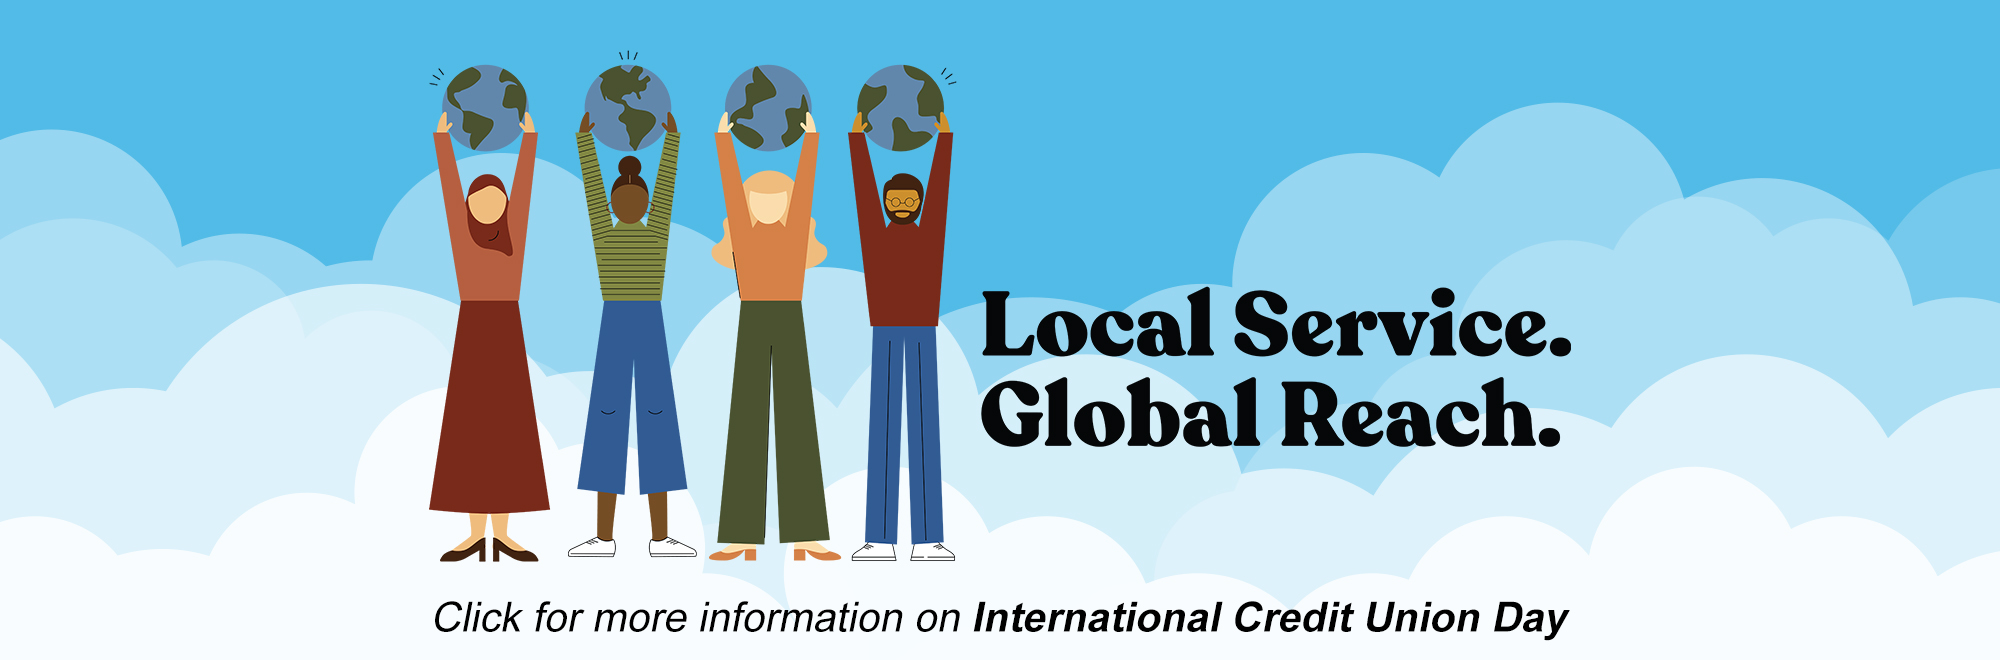 """Image of 4 cartoon people holding the planet earth above their head. Text reads, """"Local Service. Global Reach."""" Click for more information on International Credit Union Day"""